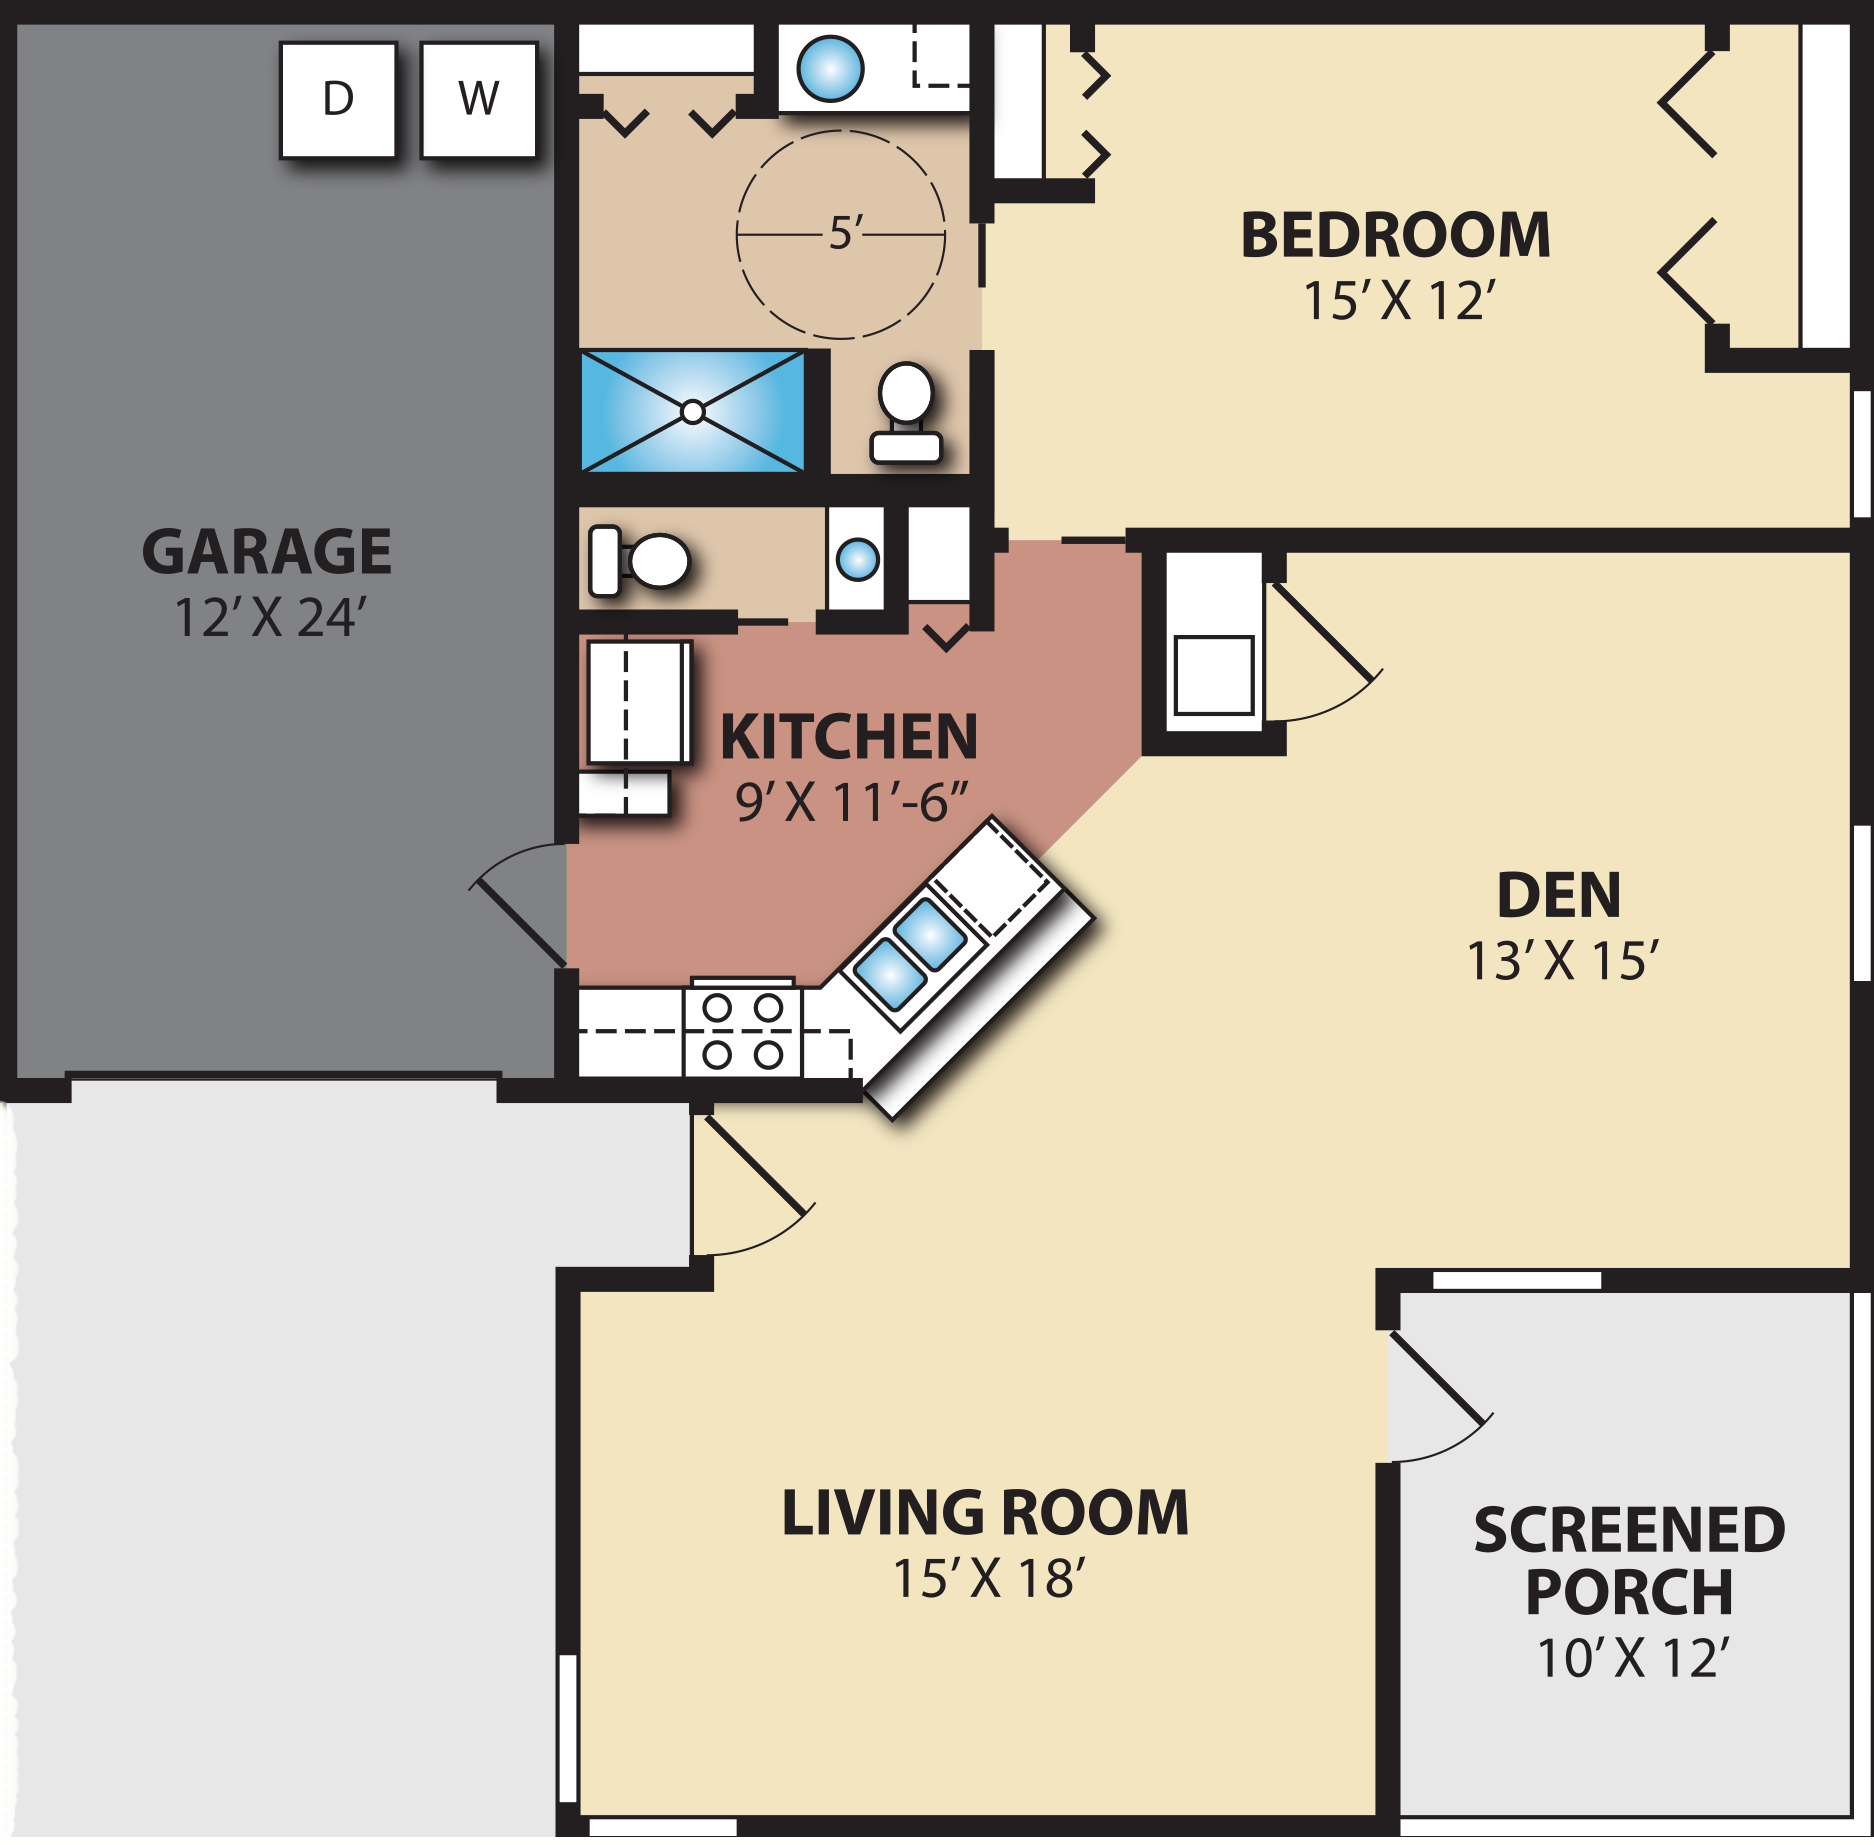 13 x 15 living room layout for 10 x 12 bedroom furniture placement